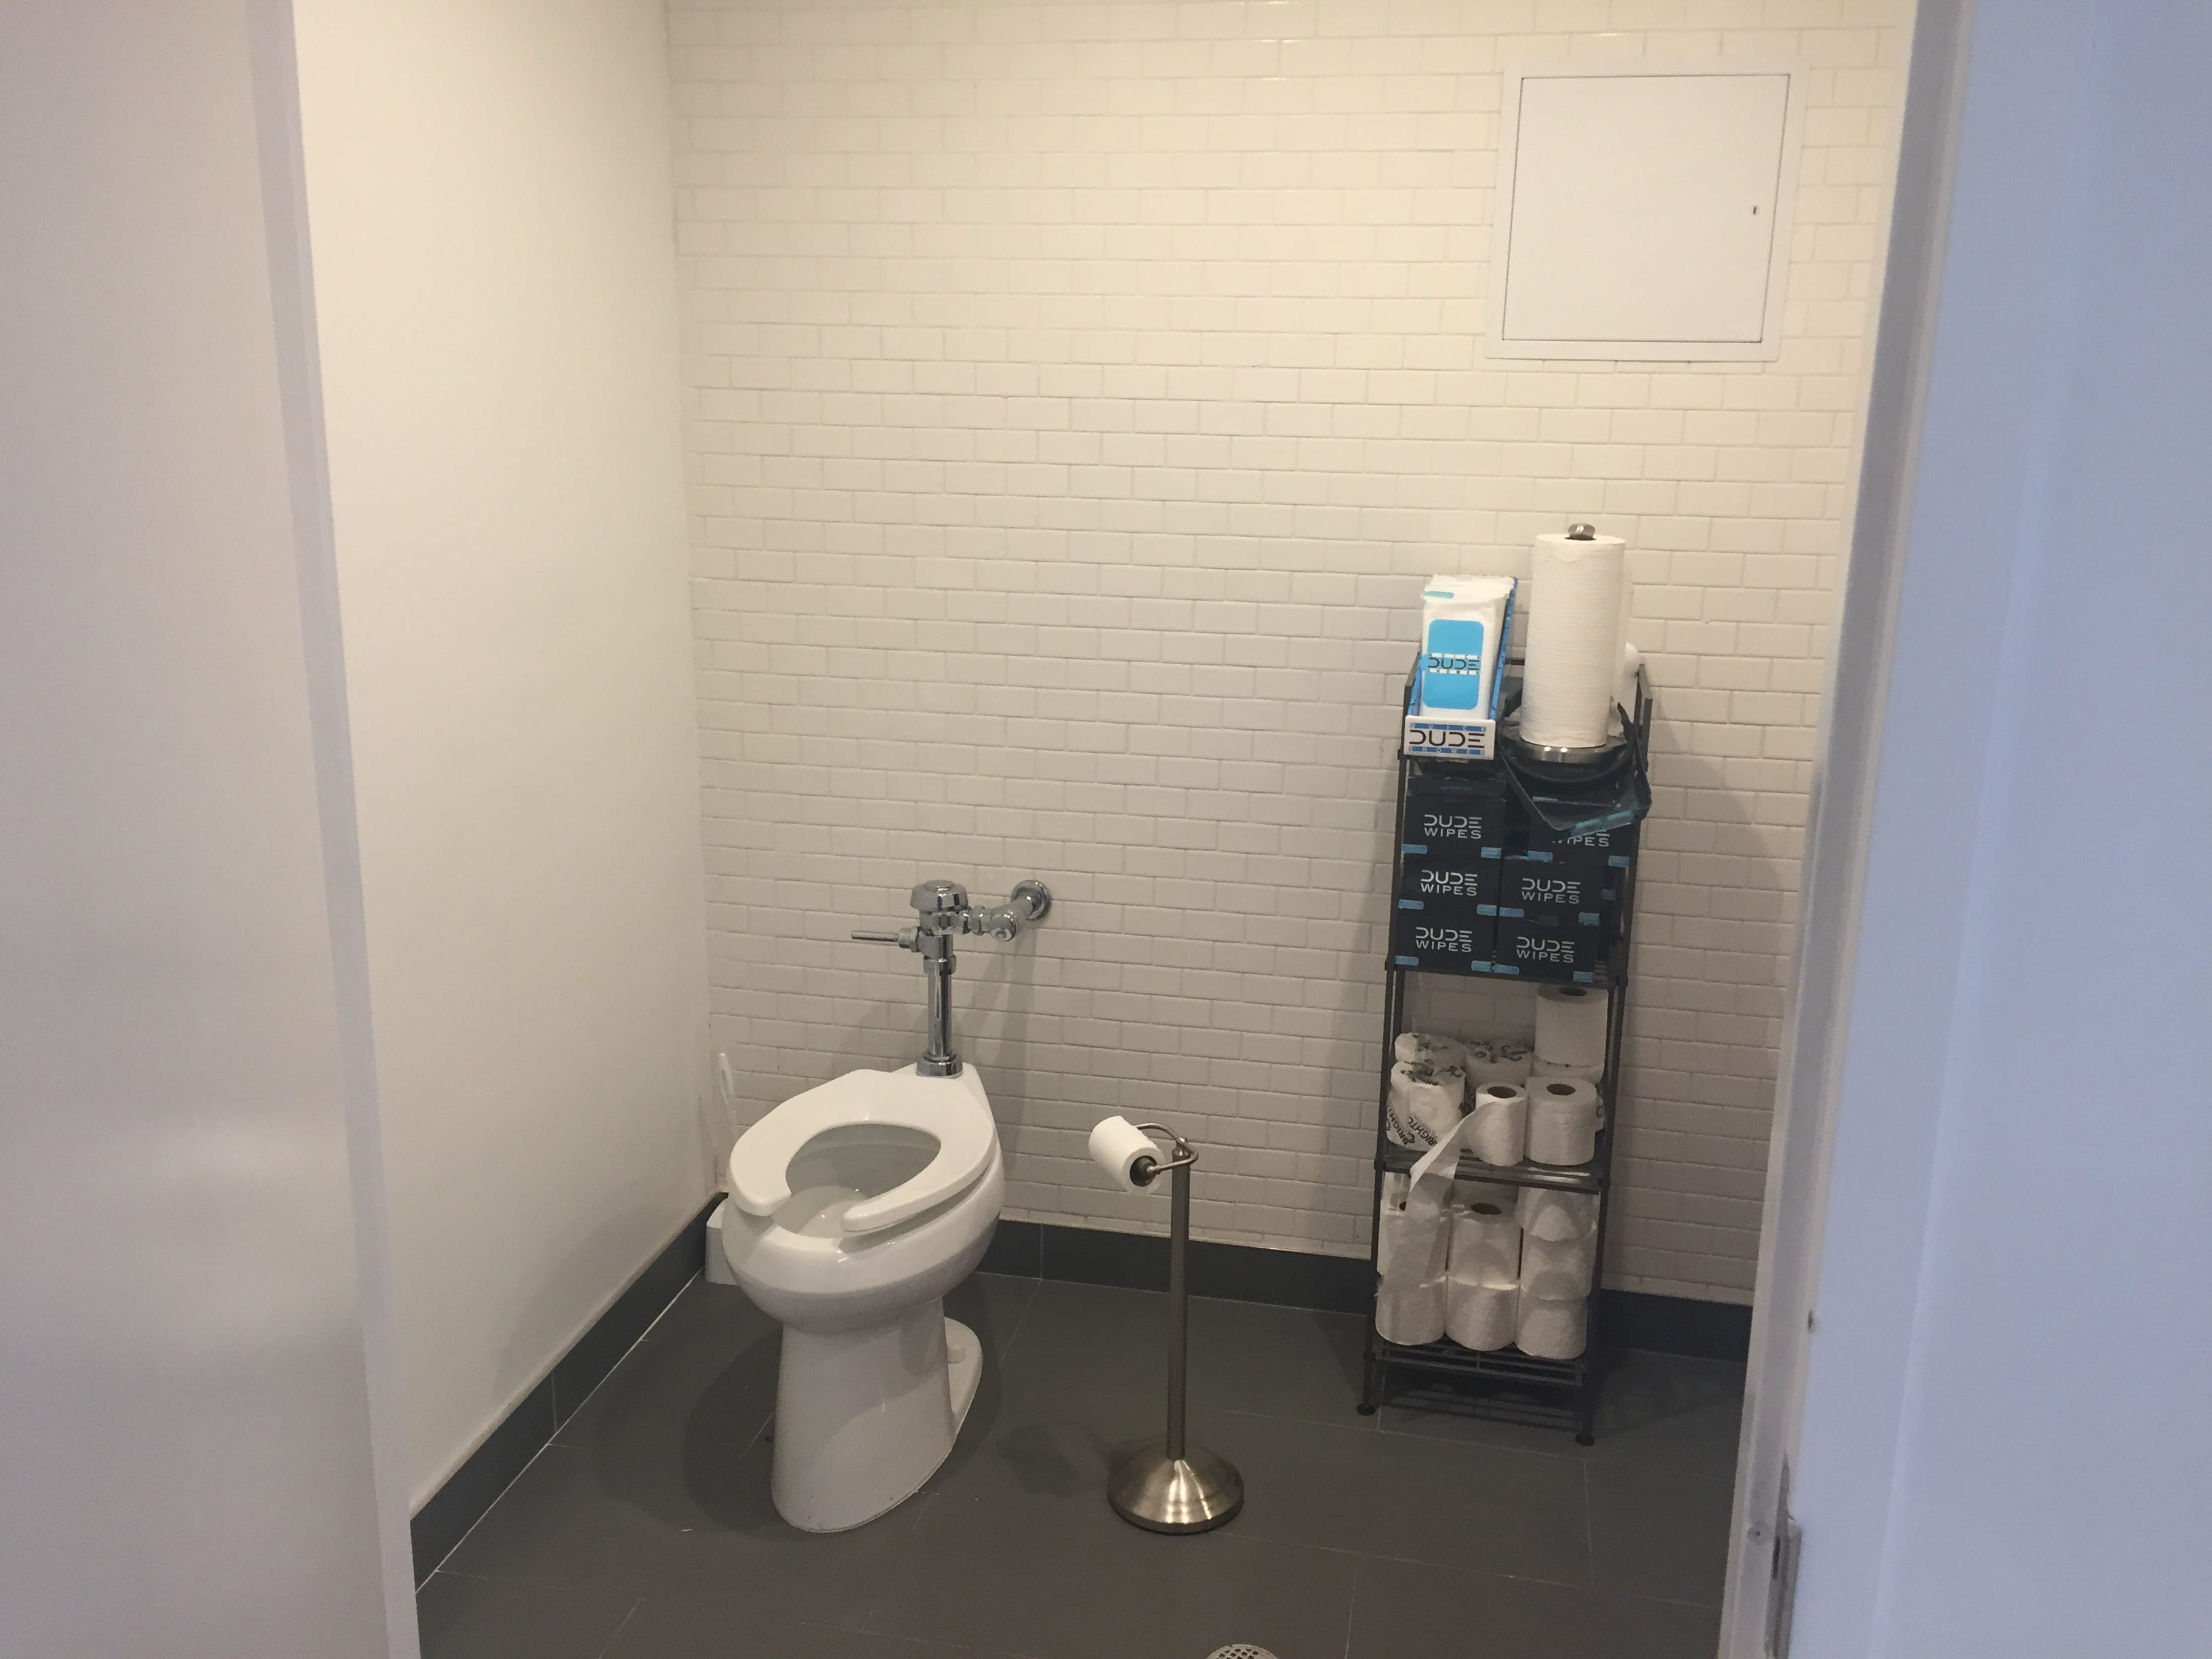 Nothing clears out a night of drinking like a few dozen trips to the bathroom. I am now prepared to give you my thoughts on Barstool HQ bathroom.